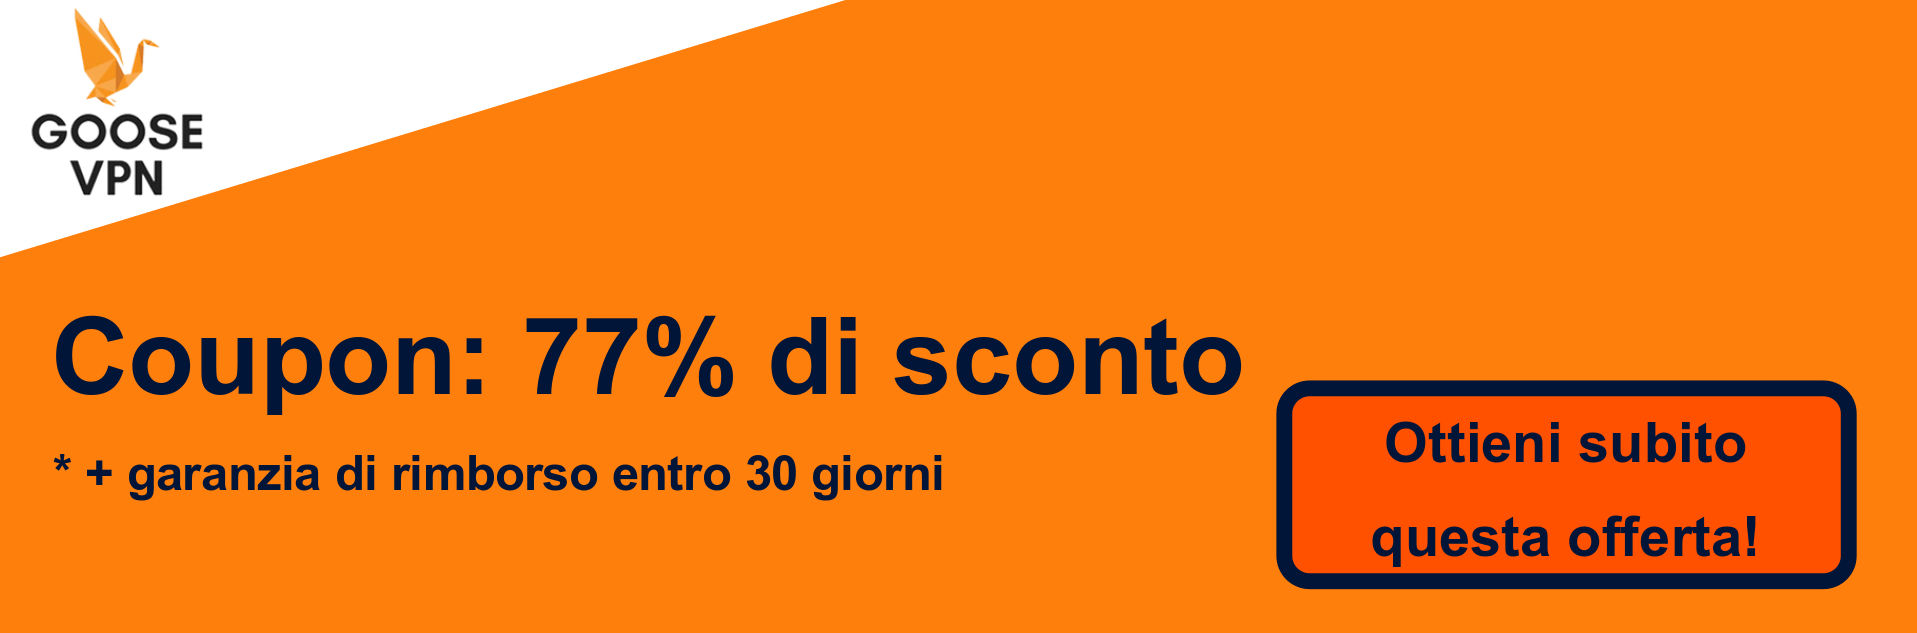 Banner coupon GooseVPN - 77% di sconto